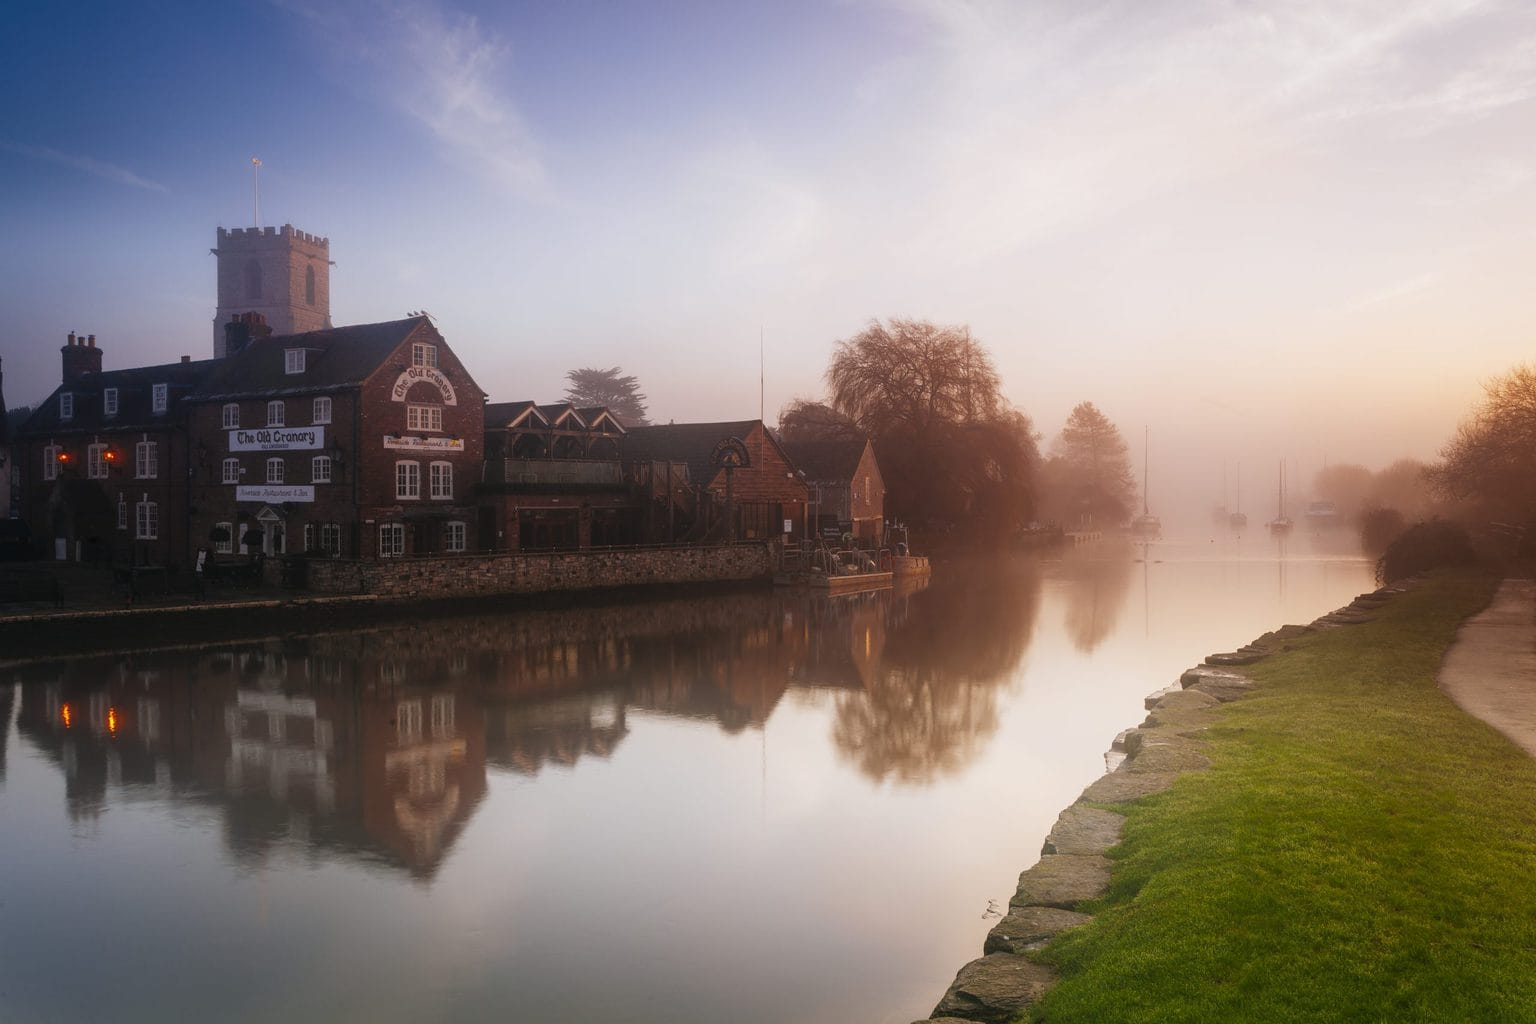 Things to do in Wareham Dorset - take a scenic river cruise